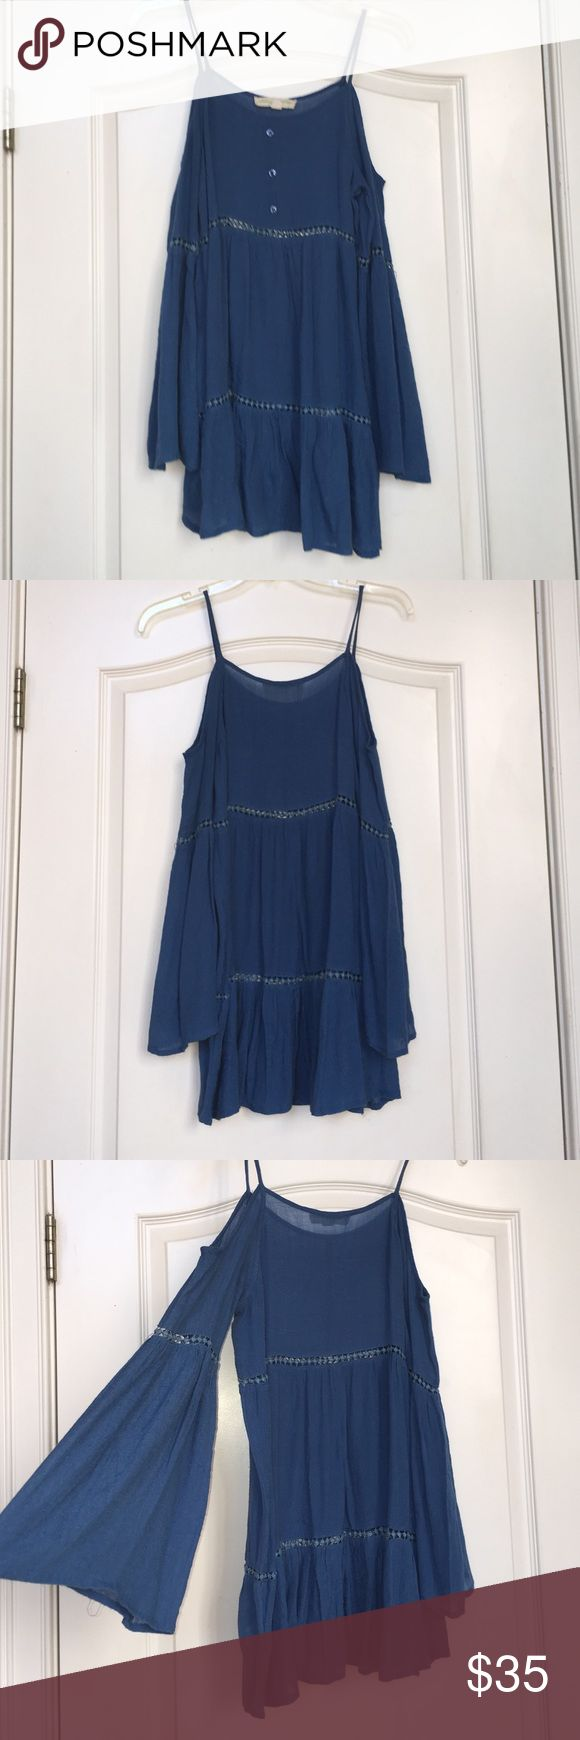 Urban Outfitters Gauze Tunic Blue tiered Urban Outfitters tunic. Can be worn as a dress, but usually best paired with jeans or leggings! Urban Outfitters Tops Tunics